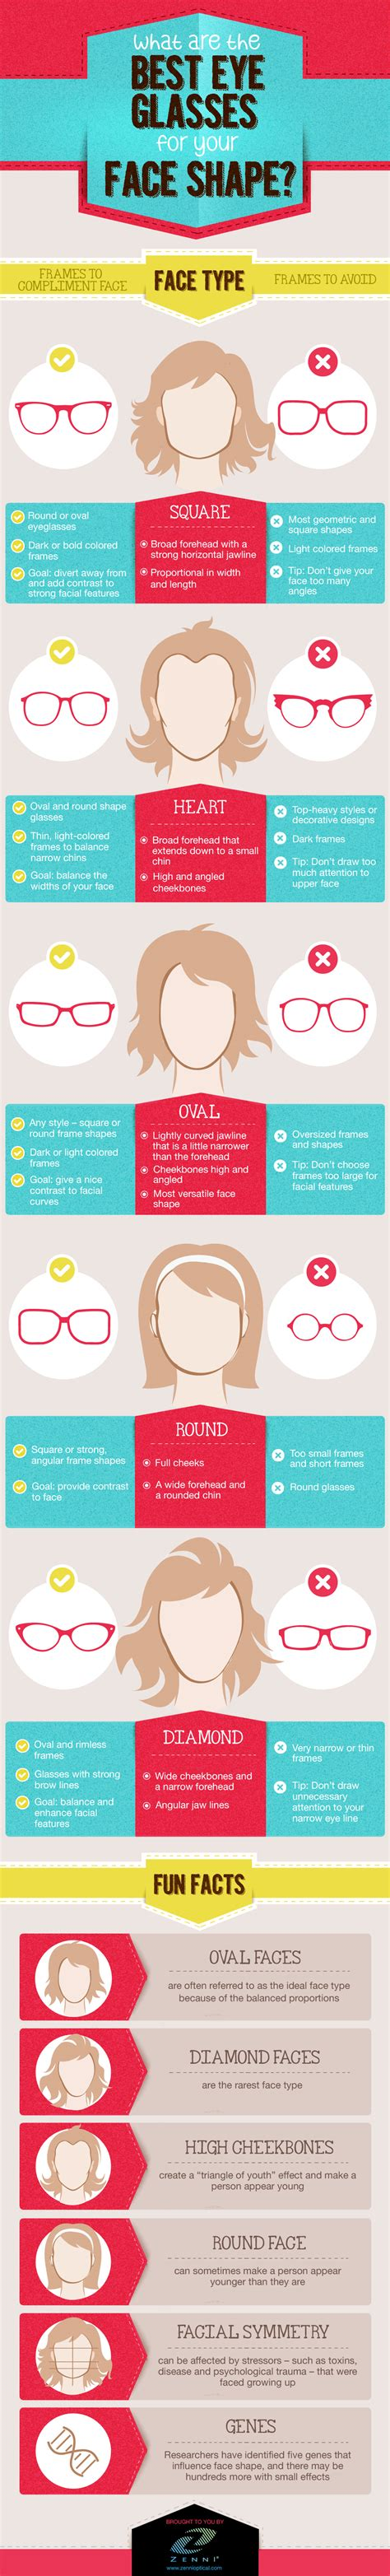 buy the right glasses for your face shape best infographic the best eye glasses for your face shape